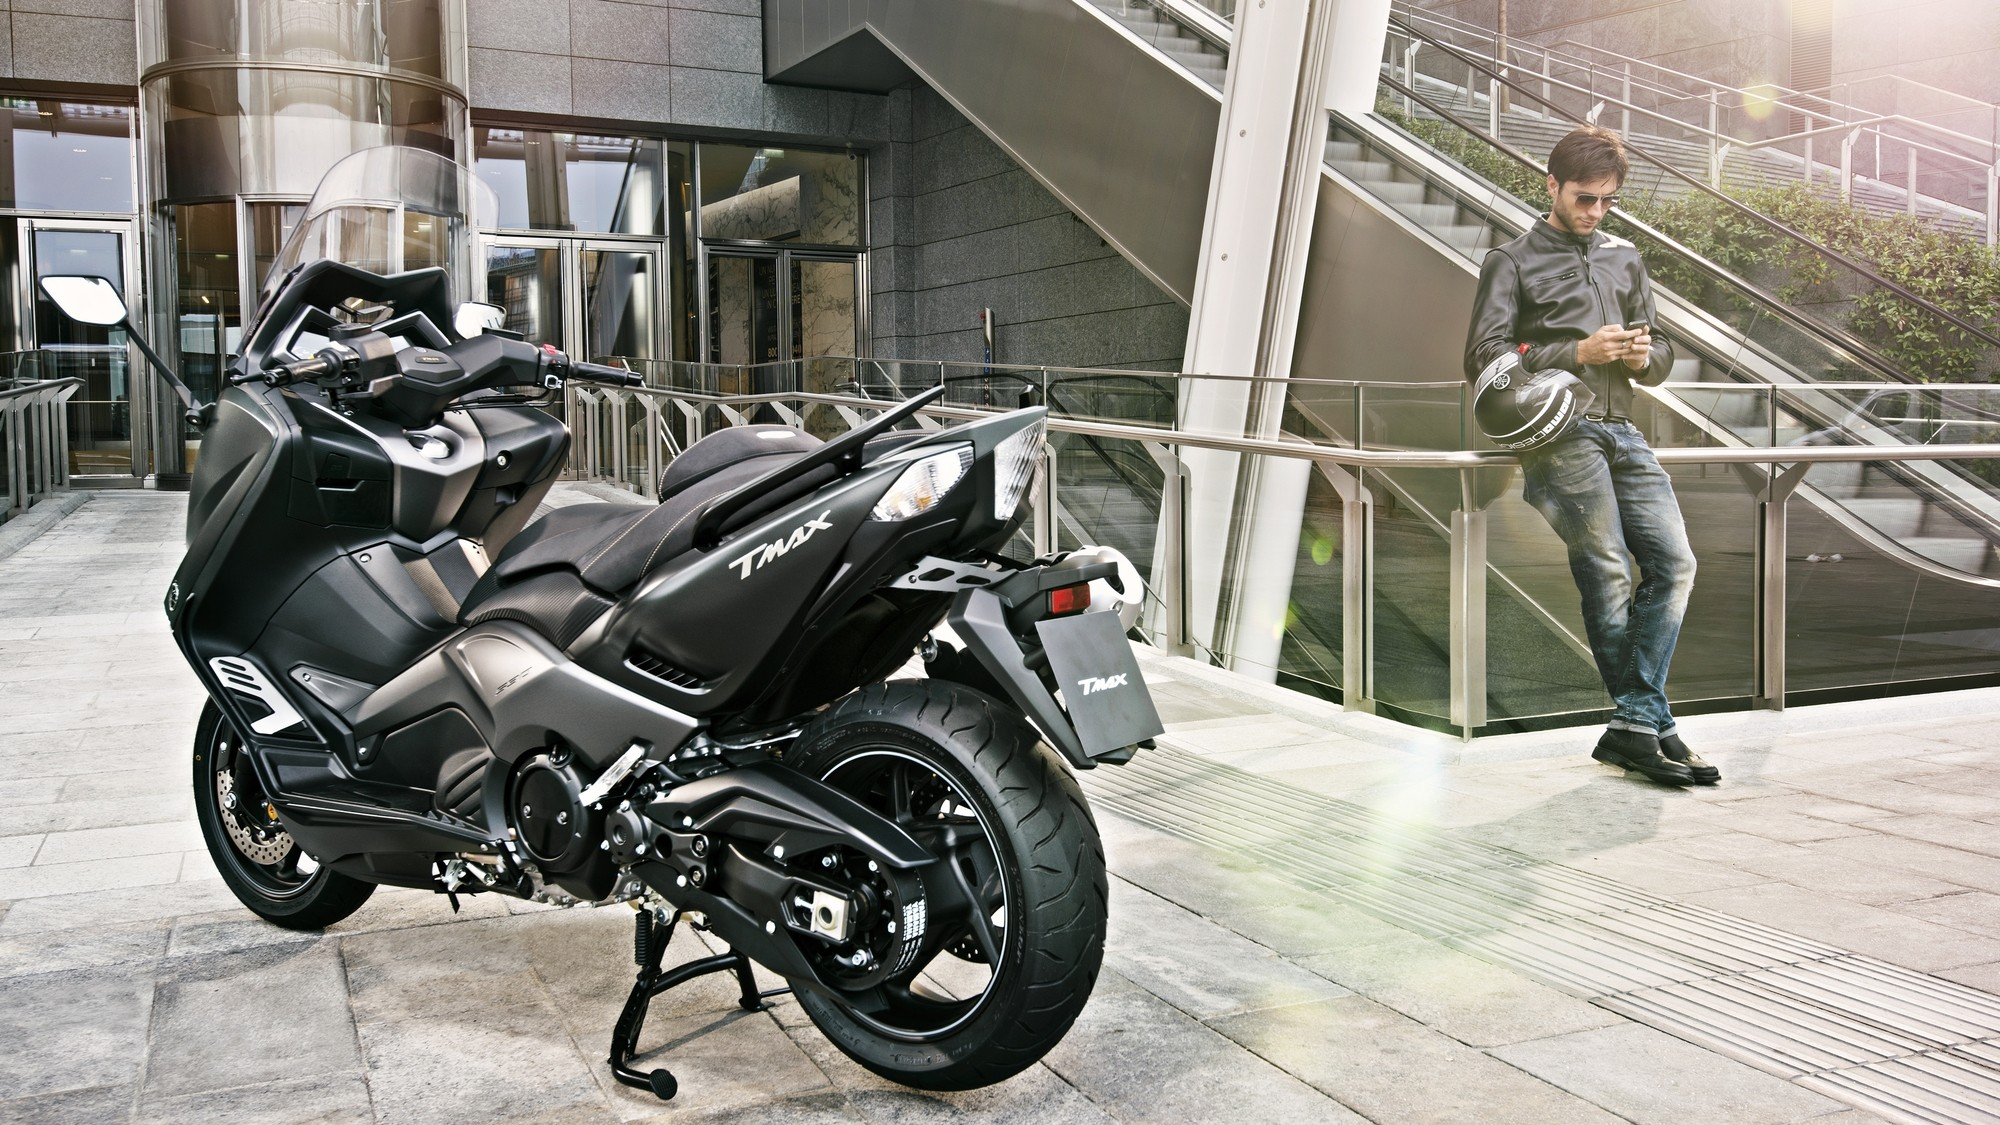 2015 yamaha t max iron max looks sharp and evil autoevolution. Black Bedroom Furniture Sets. Home Design Ideas